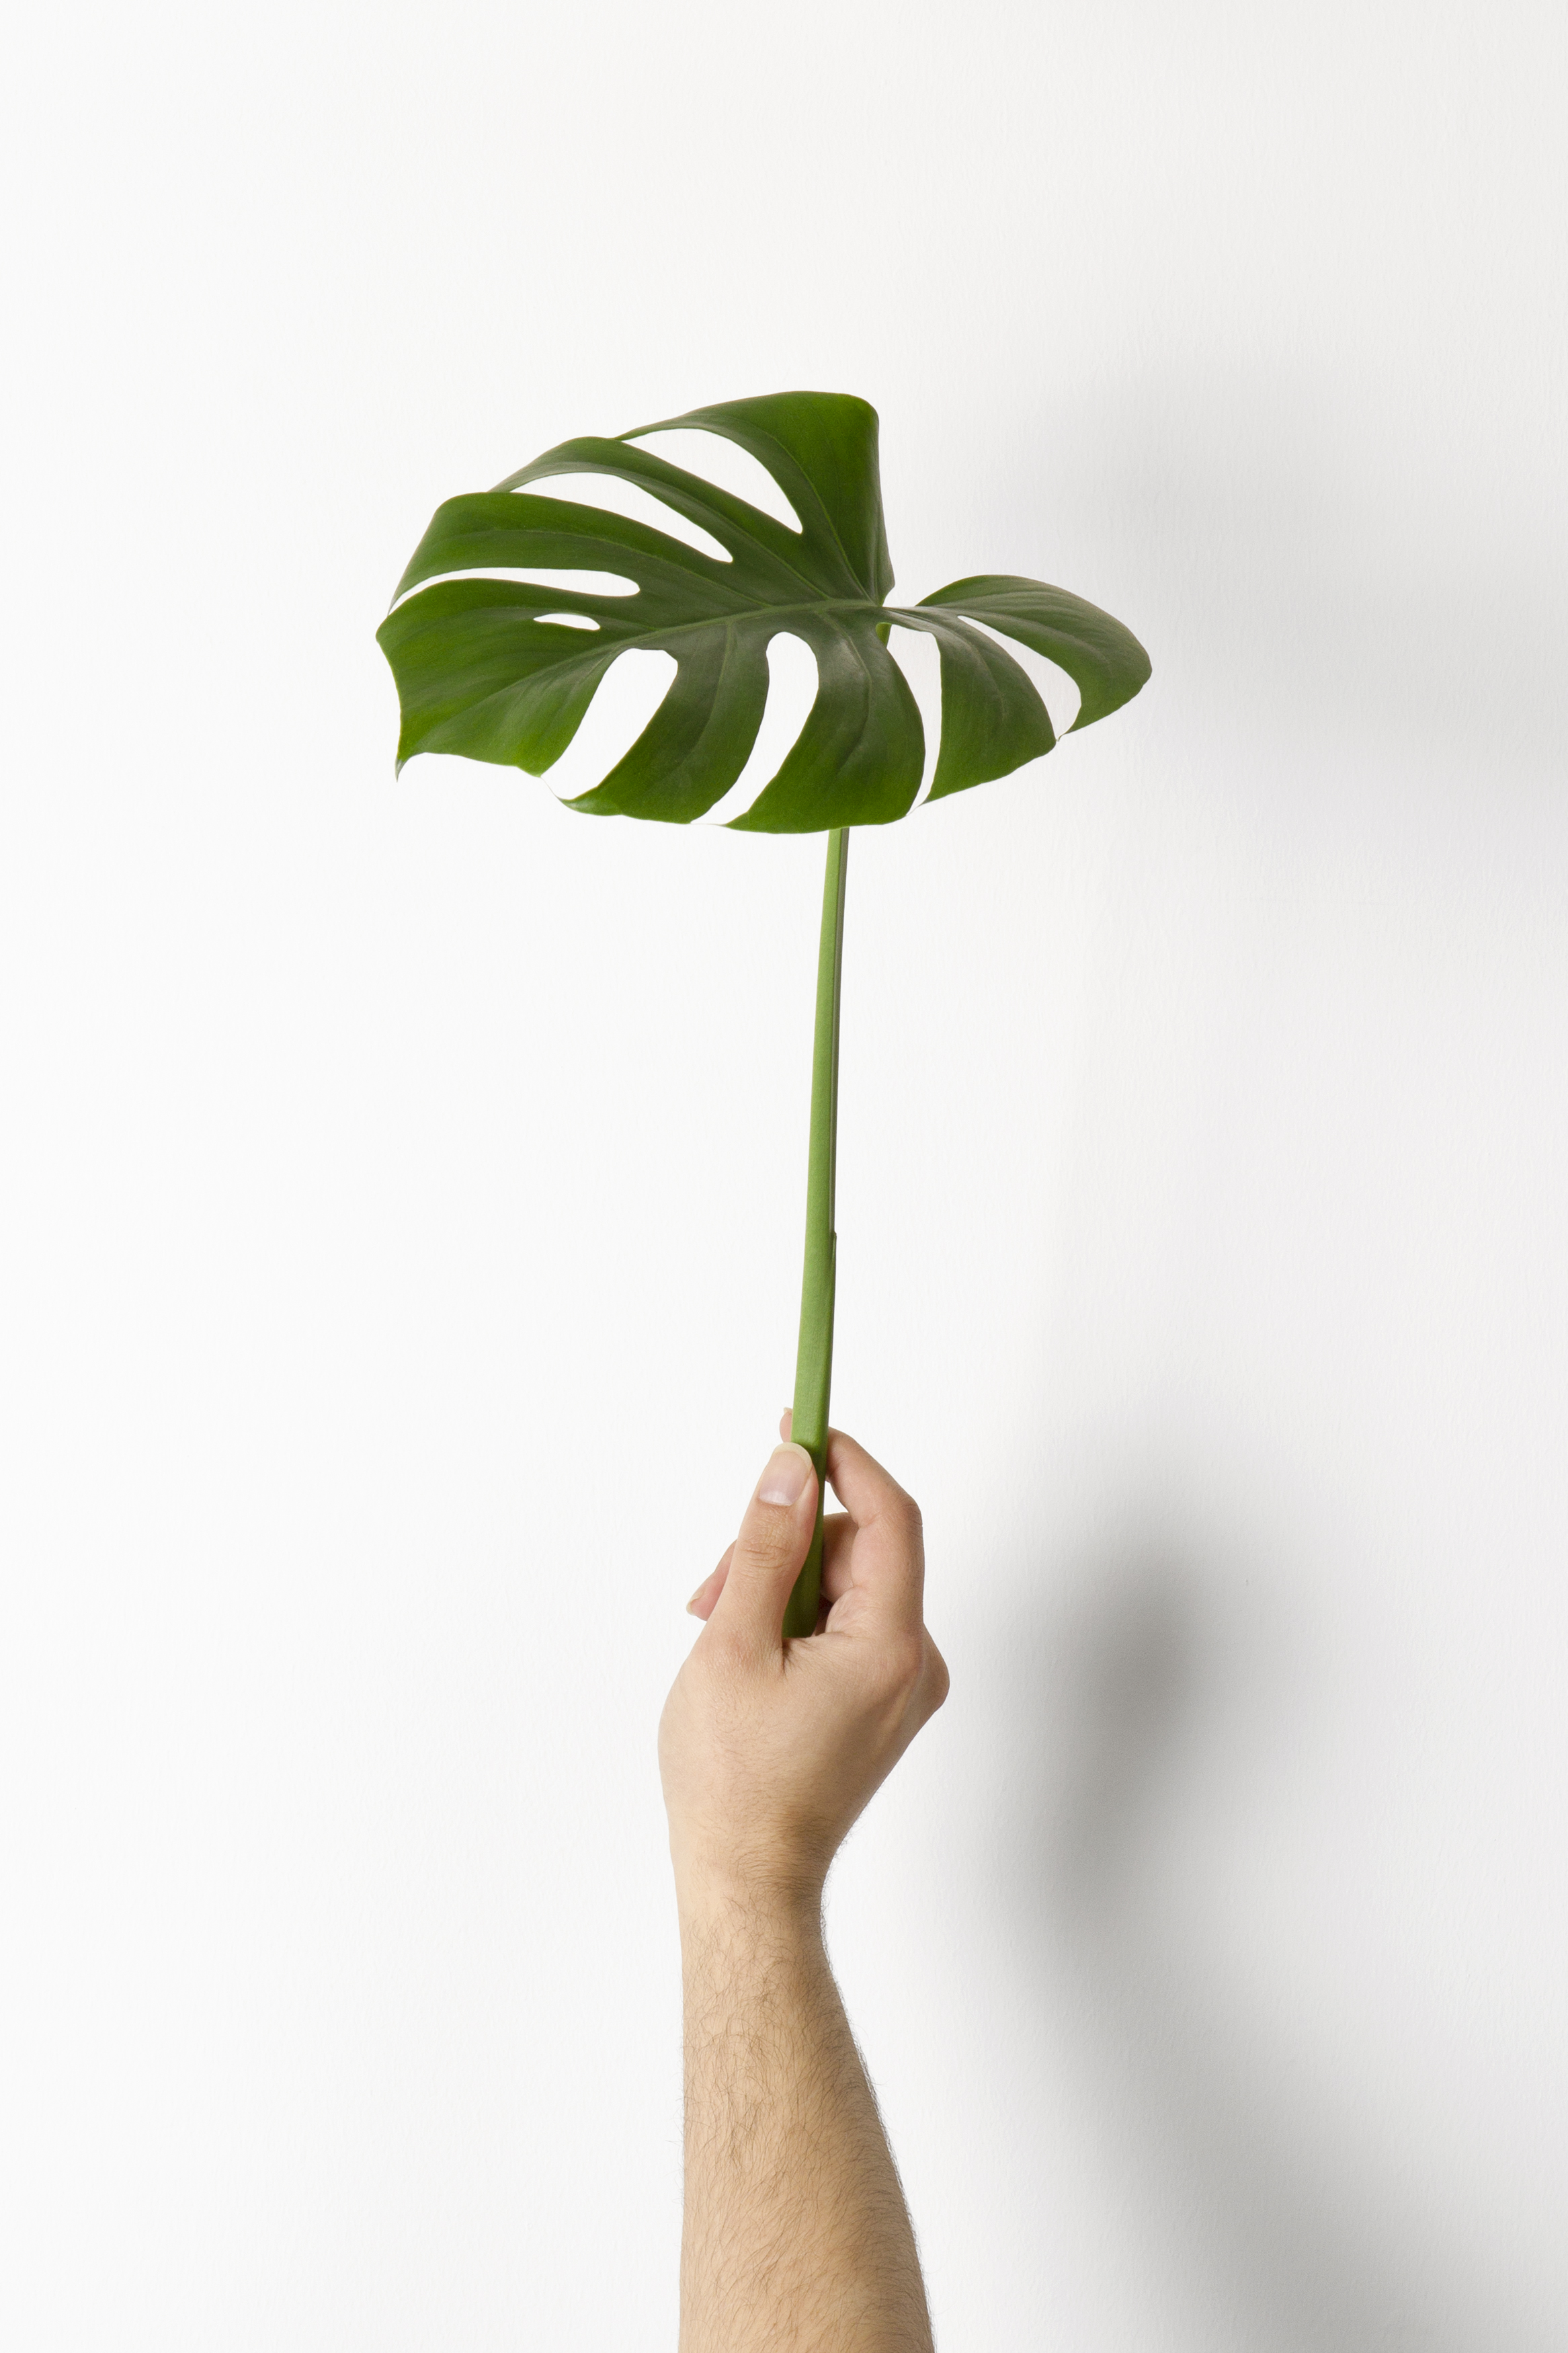 Caring for your monstera